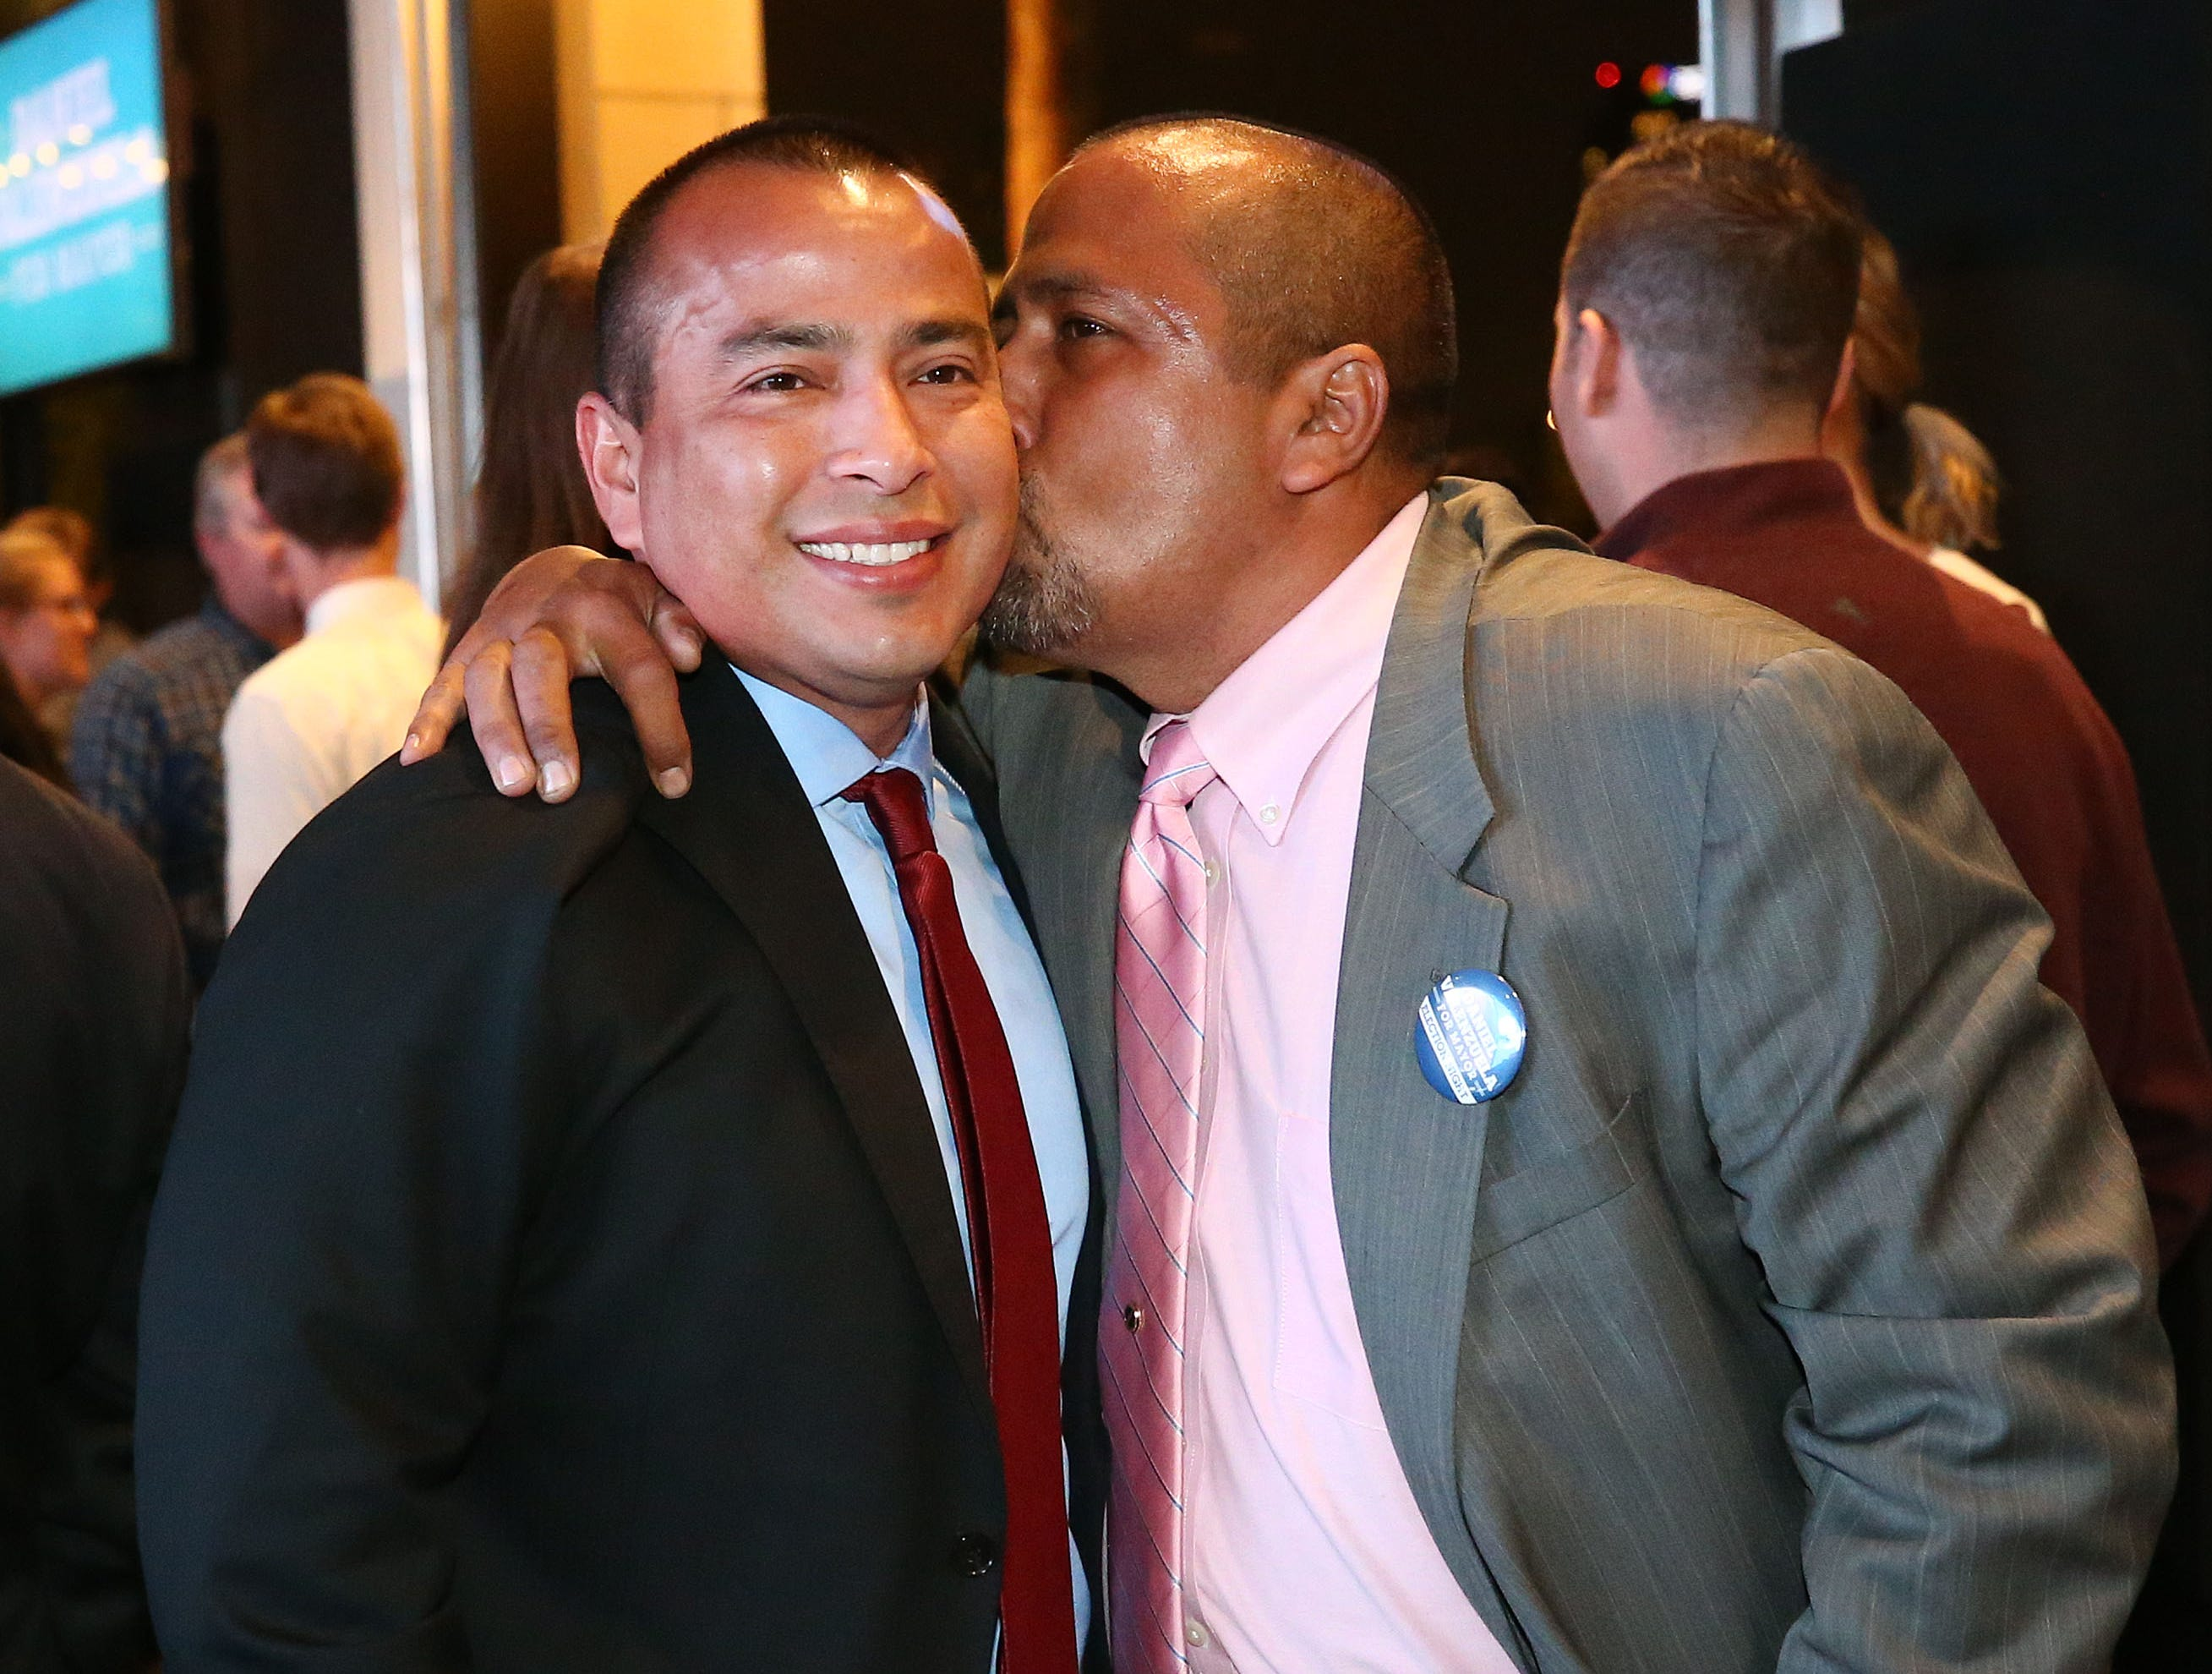 Daniel Valenzuela, candidate for Phoenix Mayor receives a kiss from his older brother Benny (right) at his election night party on Mar. 12, 2019 in Phoenix, Ariz.